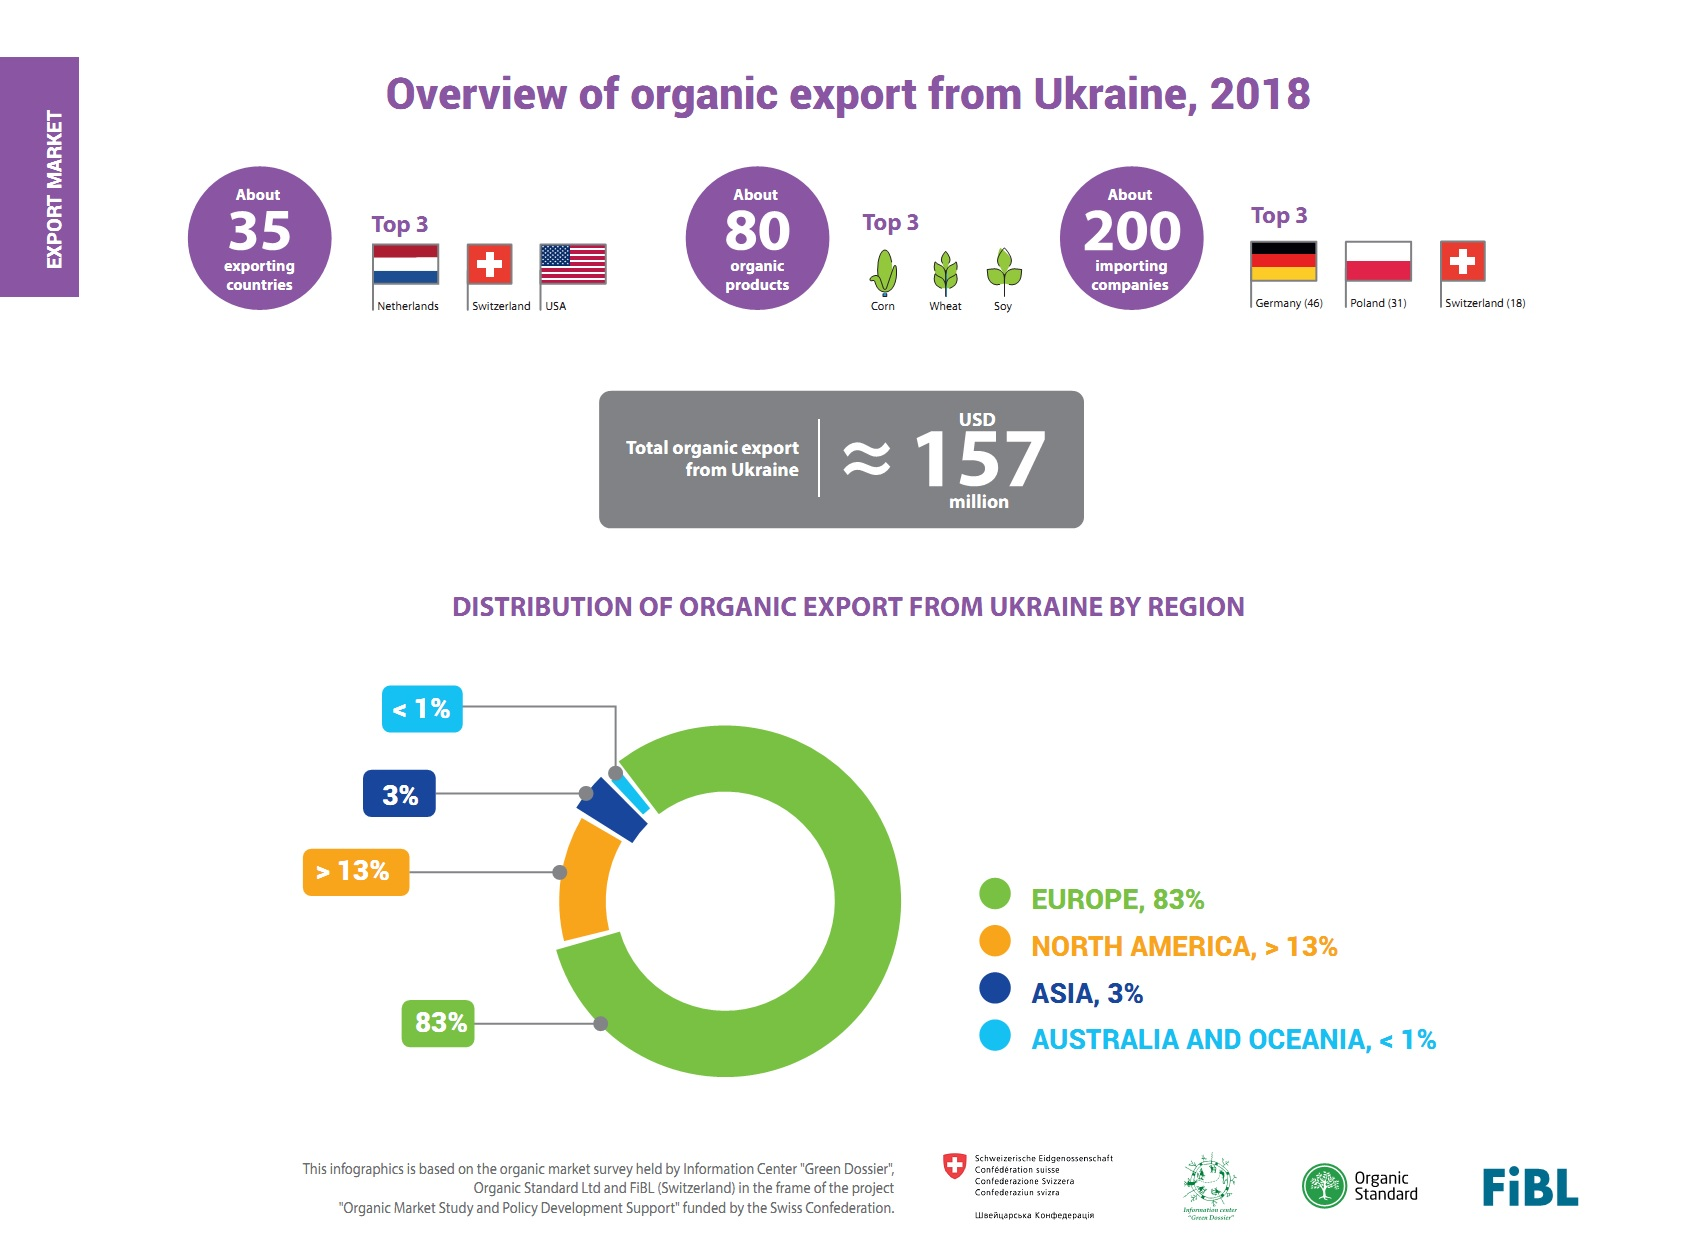 Overview of organic export from Ukraine, 2018 (click for full resolution)